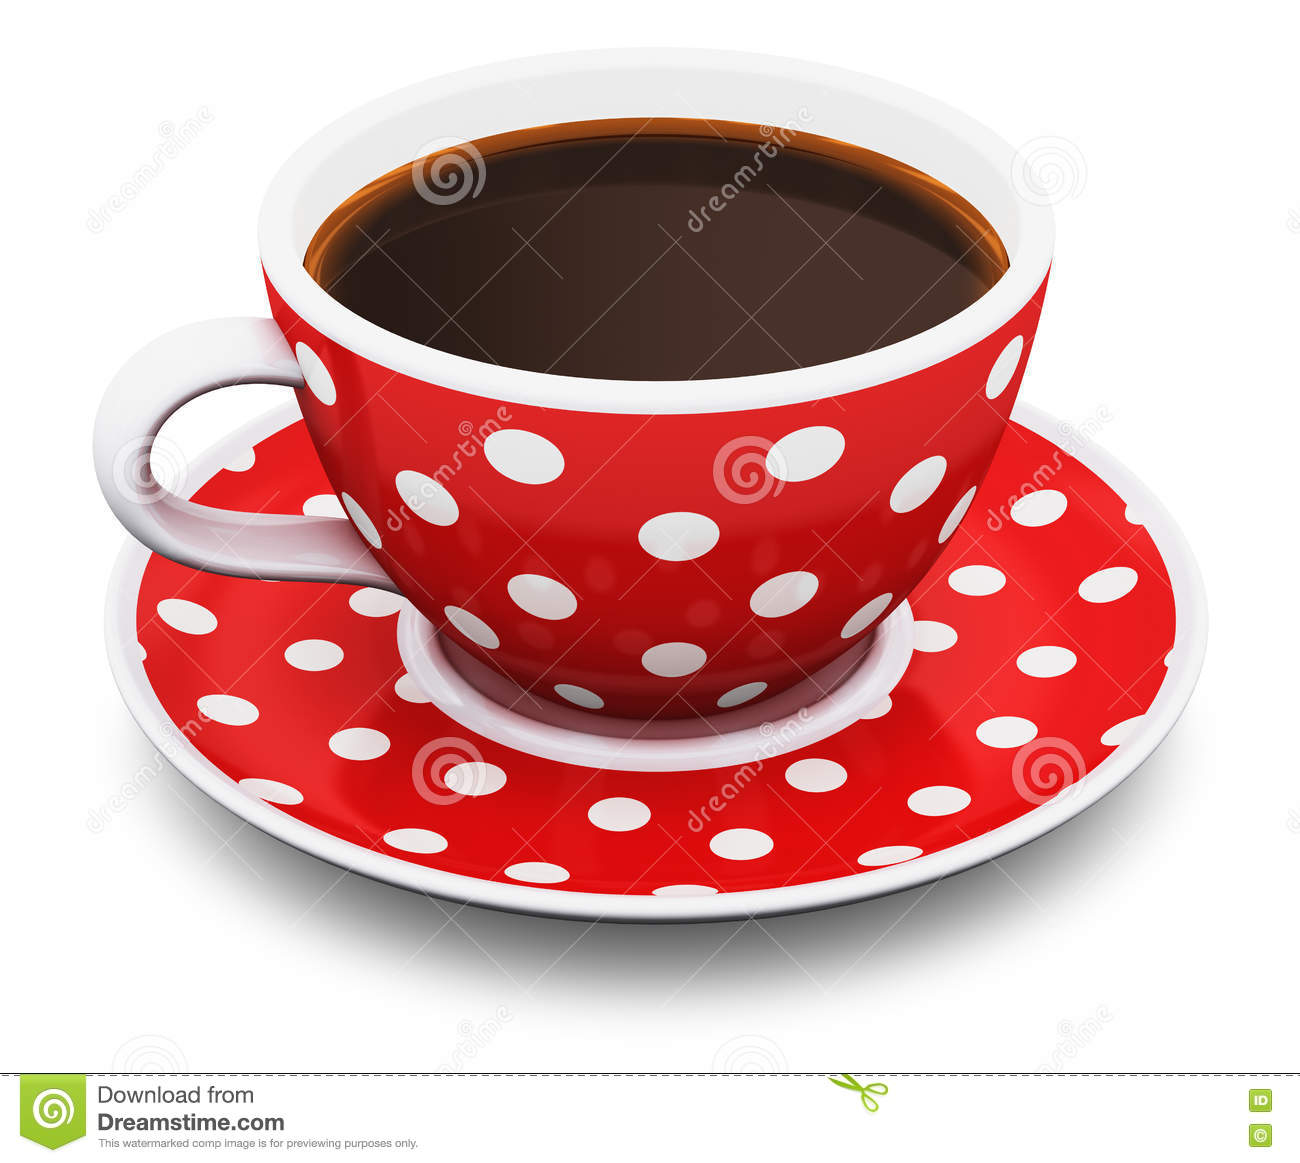 Red polka dot coffee cup stock illustration. Illustration of coffee ...